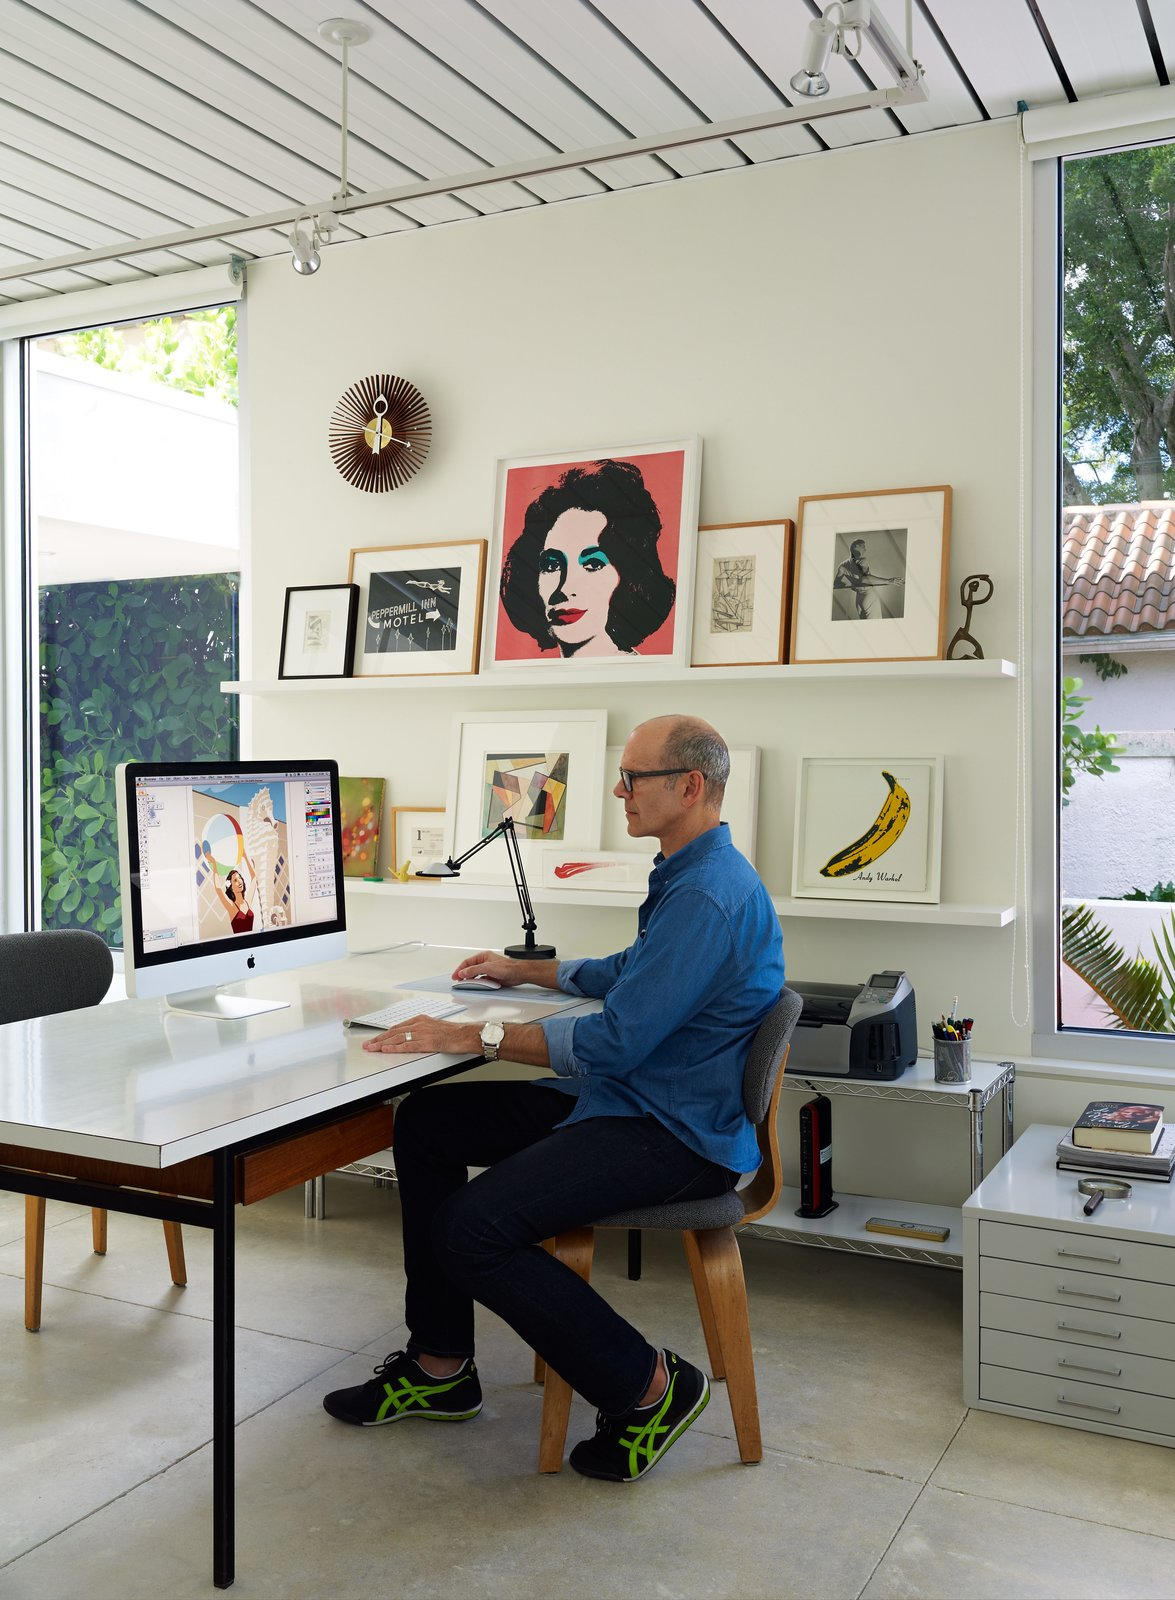 Office, Study, Chair, Lamps, Concrete, Shelves, and Desk Pirman, an illustrator, works on a vintage Florence Knoll table in his studio at the front of the house.  Best Office Concrete Lamps Photos from This Sparkling New Home Is a Perfect Remake of Classic Sarasota School Modernism